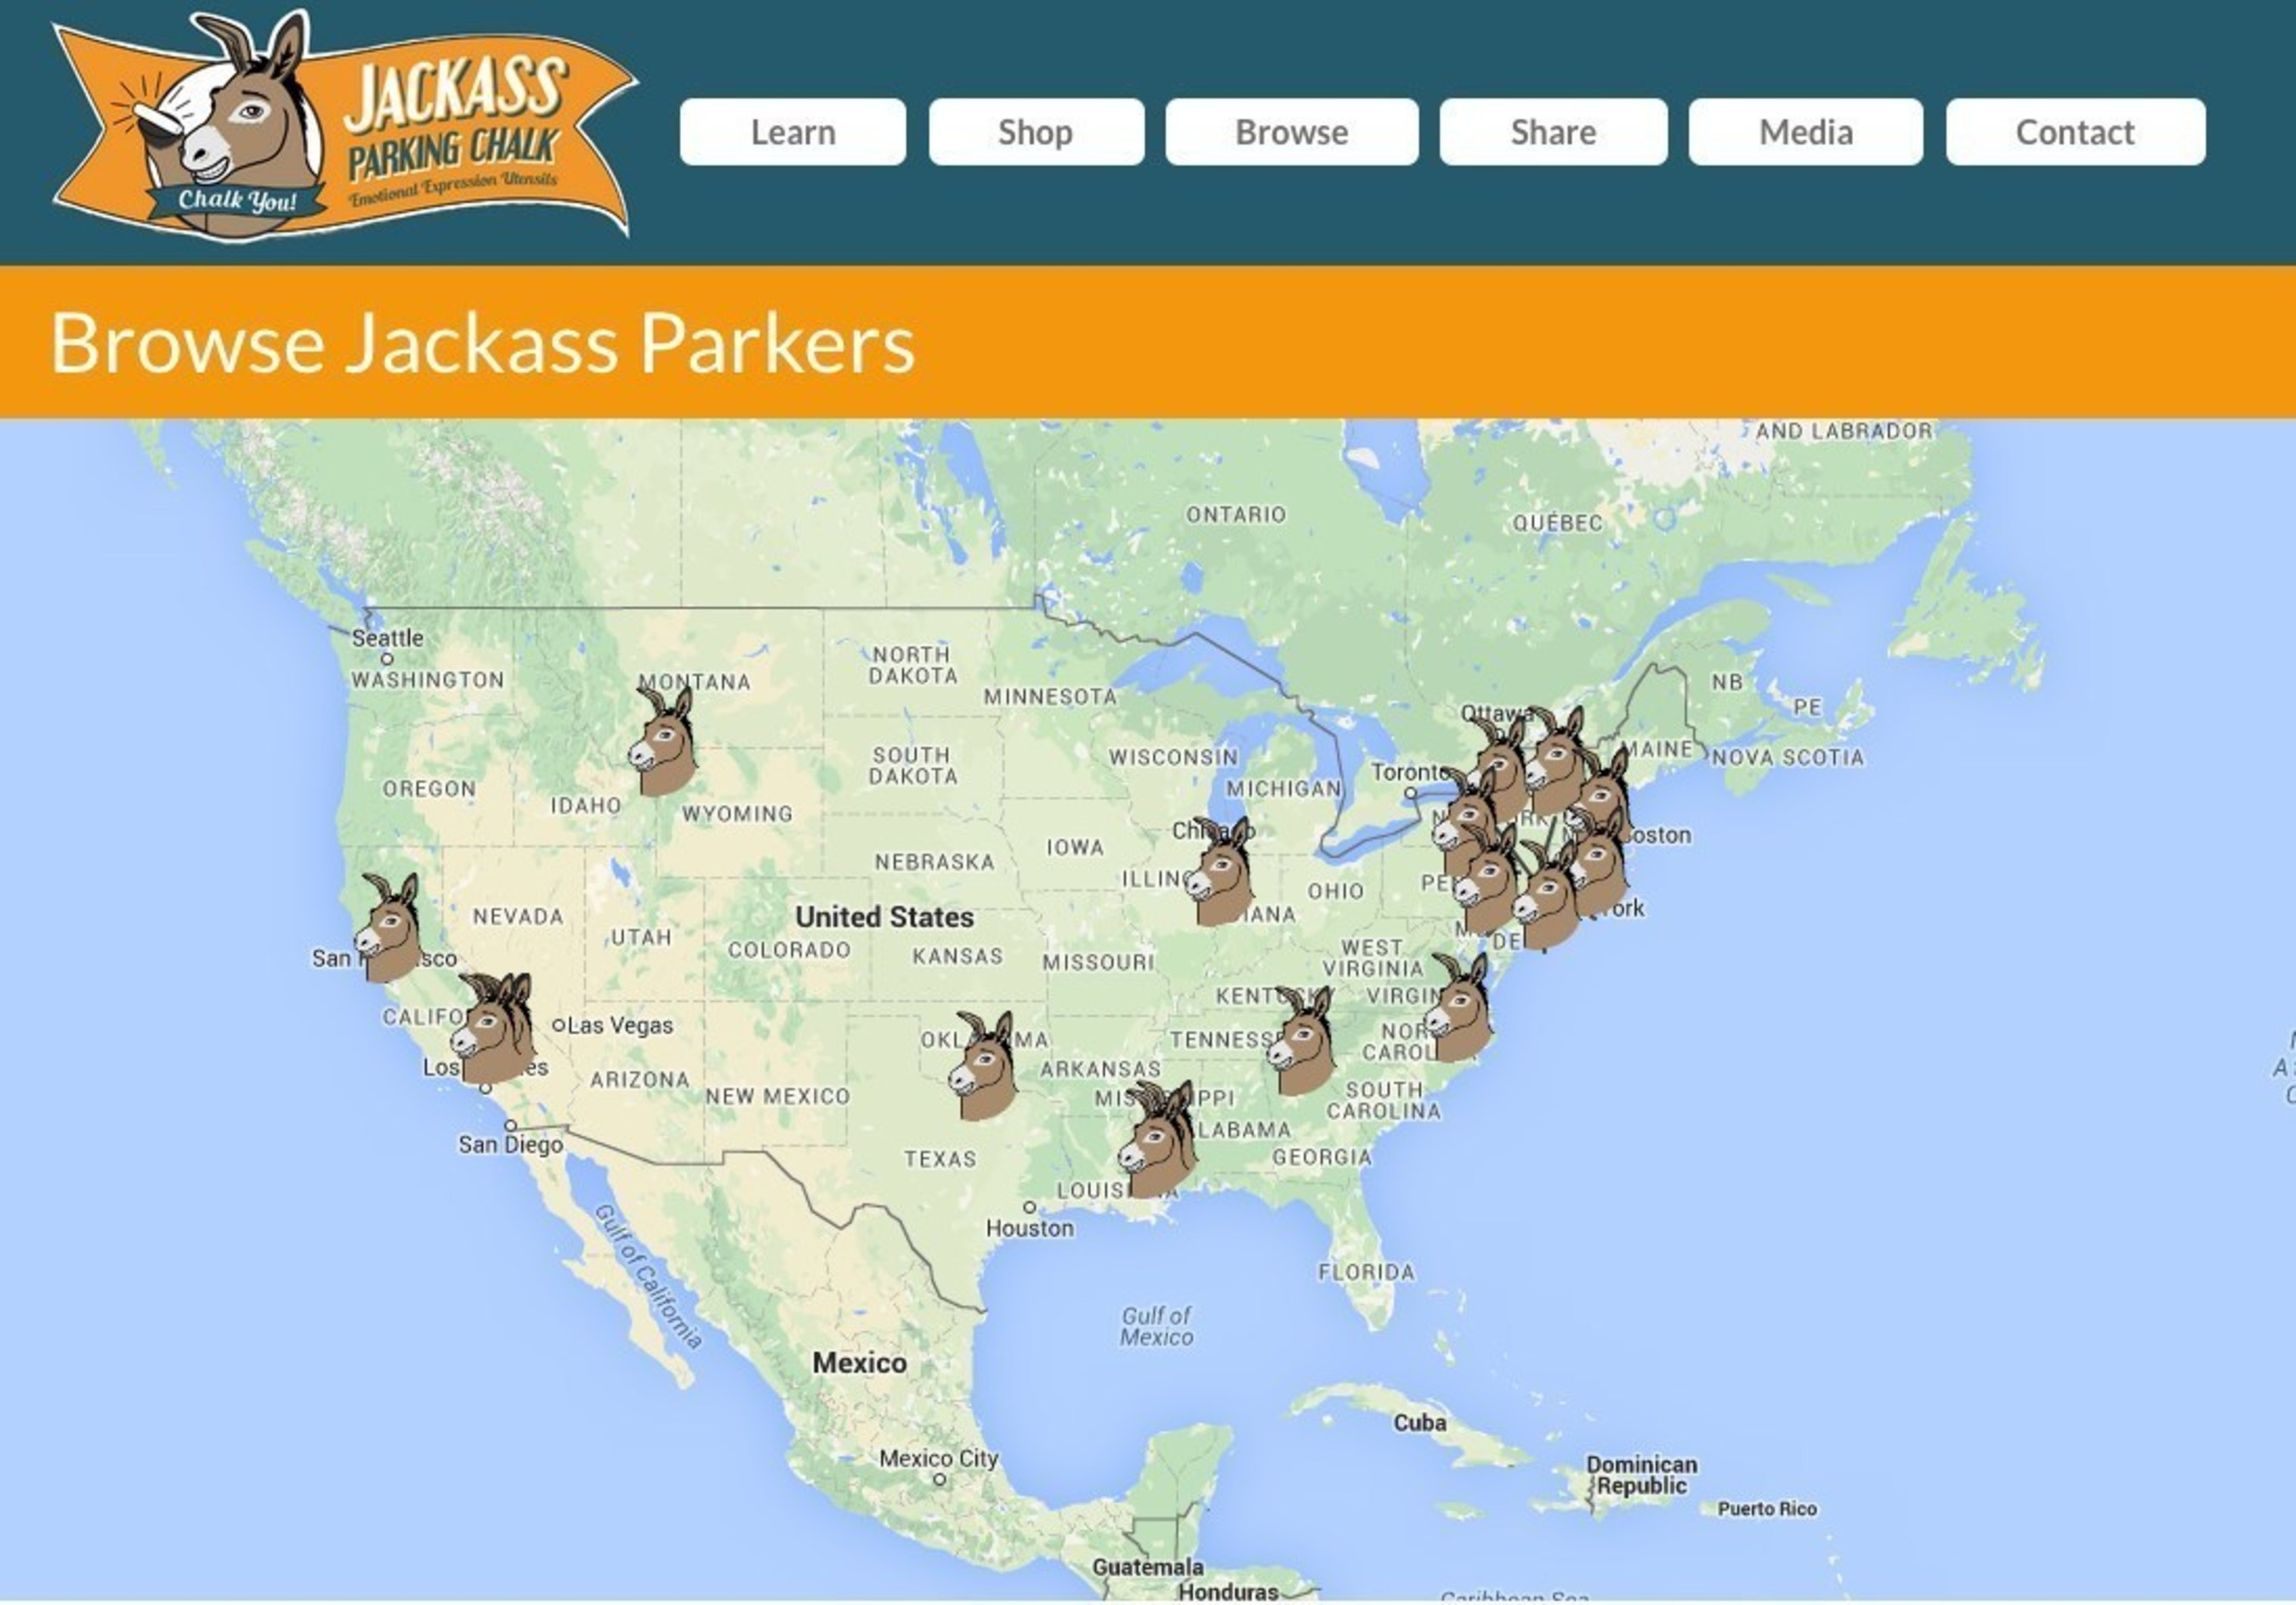 Browse Jackass Parkers at https://chalkyou.com